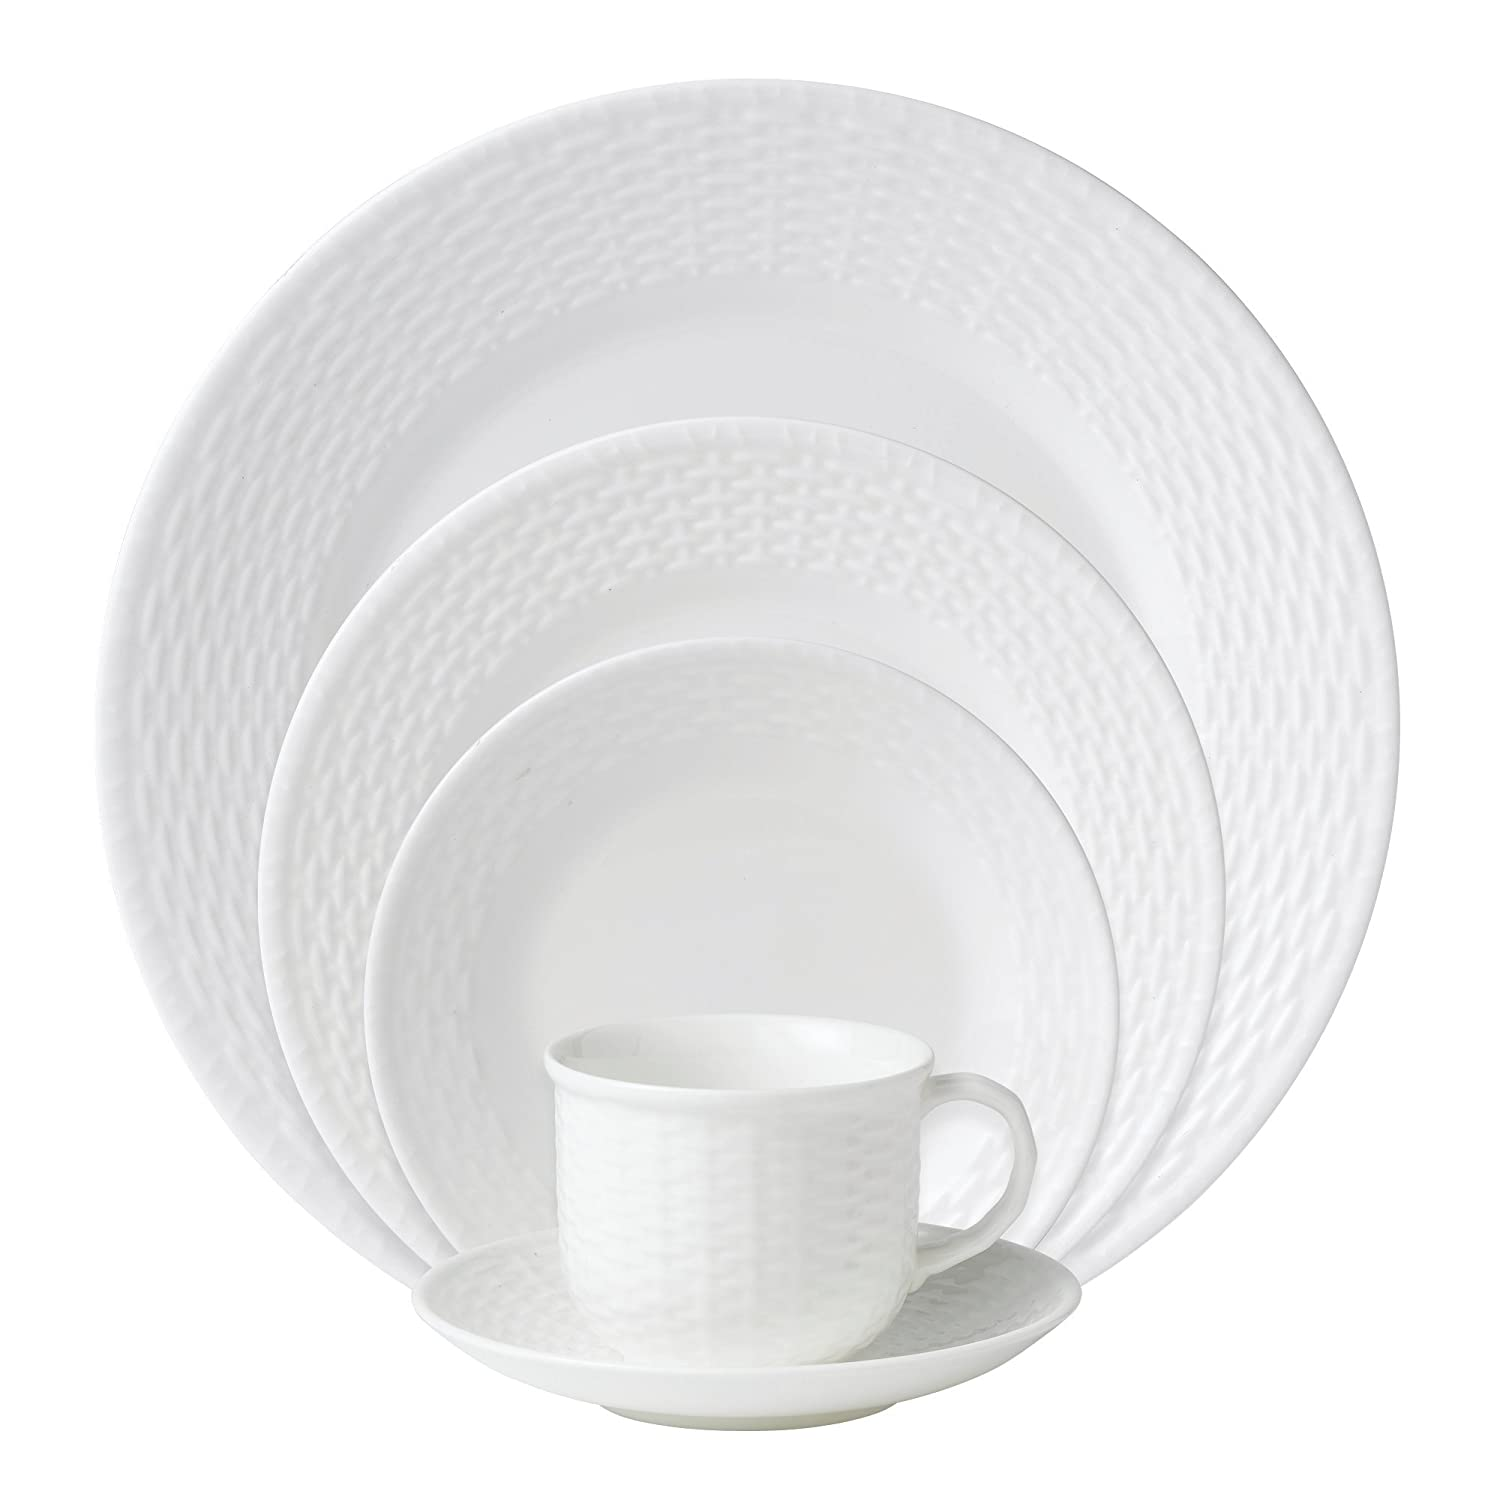 Amazon.com | Wedgwood 0-01562-0296 Nantucket Basket 5-Piece Place Setting Service for 1 Wedgwood Nantucket Basket Teapots  sc 1 st  Amazon.com & Amazon.com | Wedgwood 0-01562-0296 Nantucket Basket 5-Piece Place ...